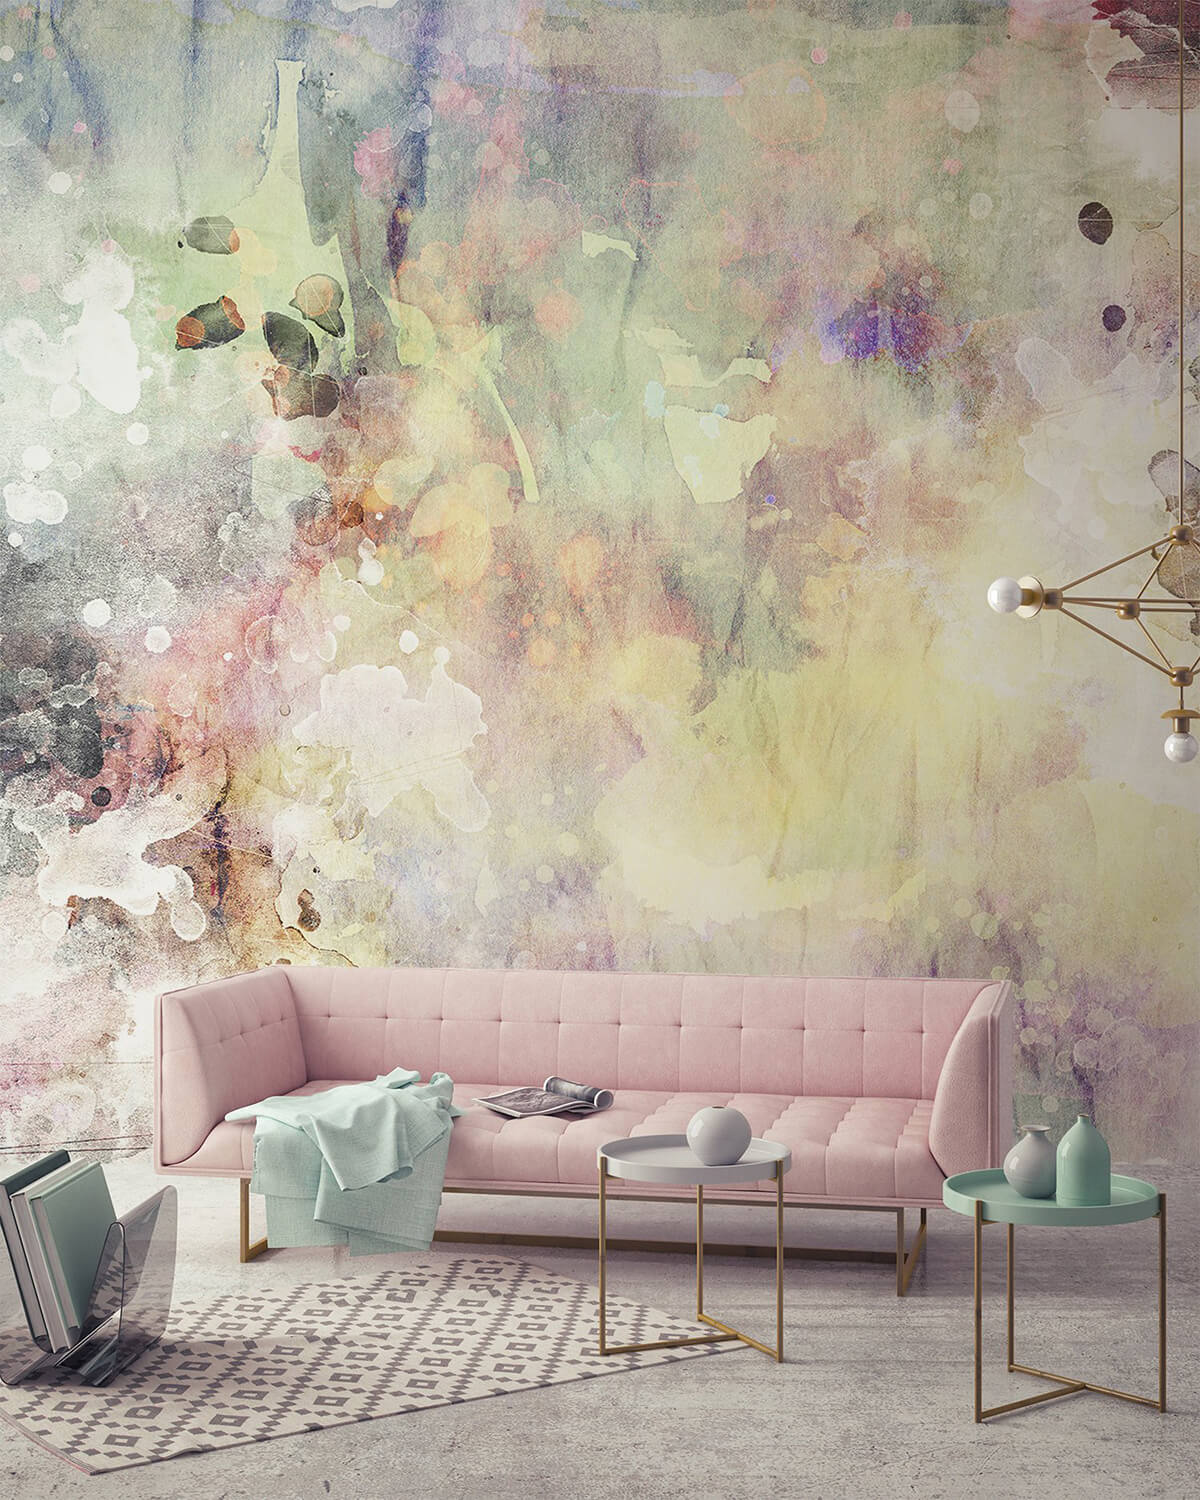 14 Best Interesting Wall Decor Ideas and Designs for 14